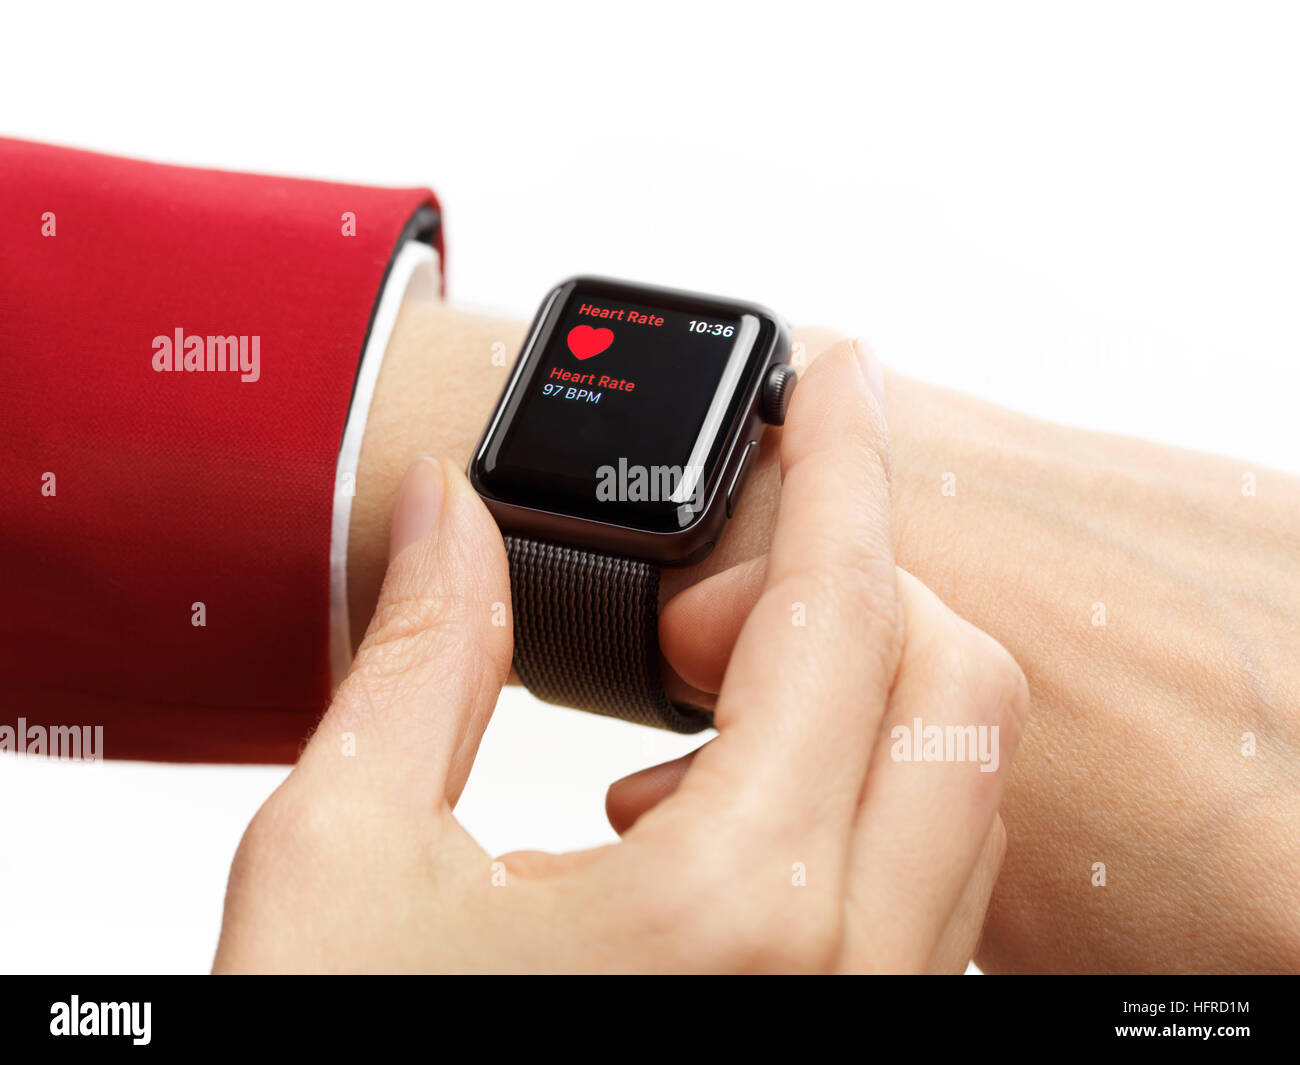 Woman hand with Apple Watch, smartwatch on her wrist, measuring her heart rate - Stock Image